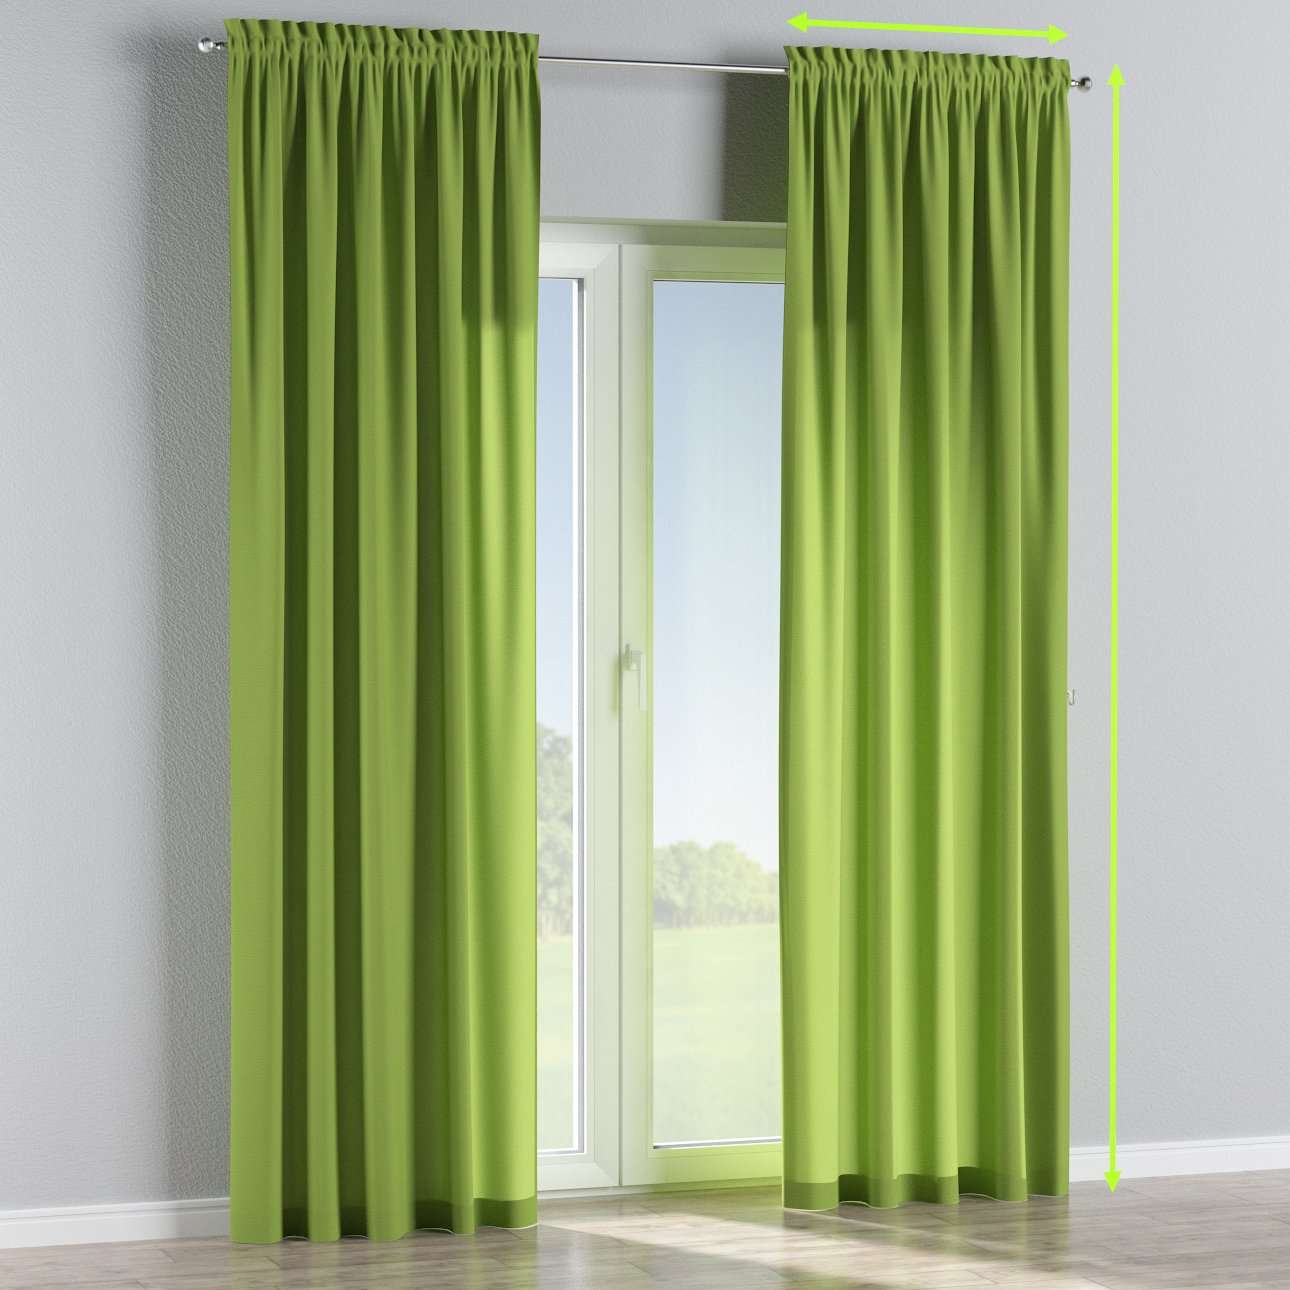 Slot and frill lined curtains in collection Quadro, fabric: 136-37